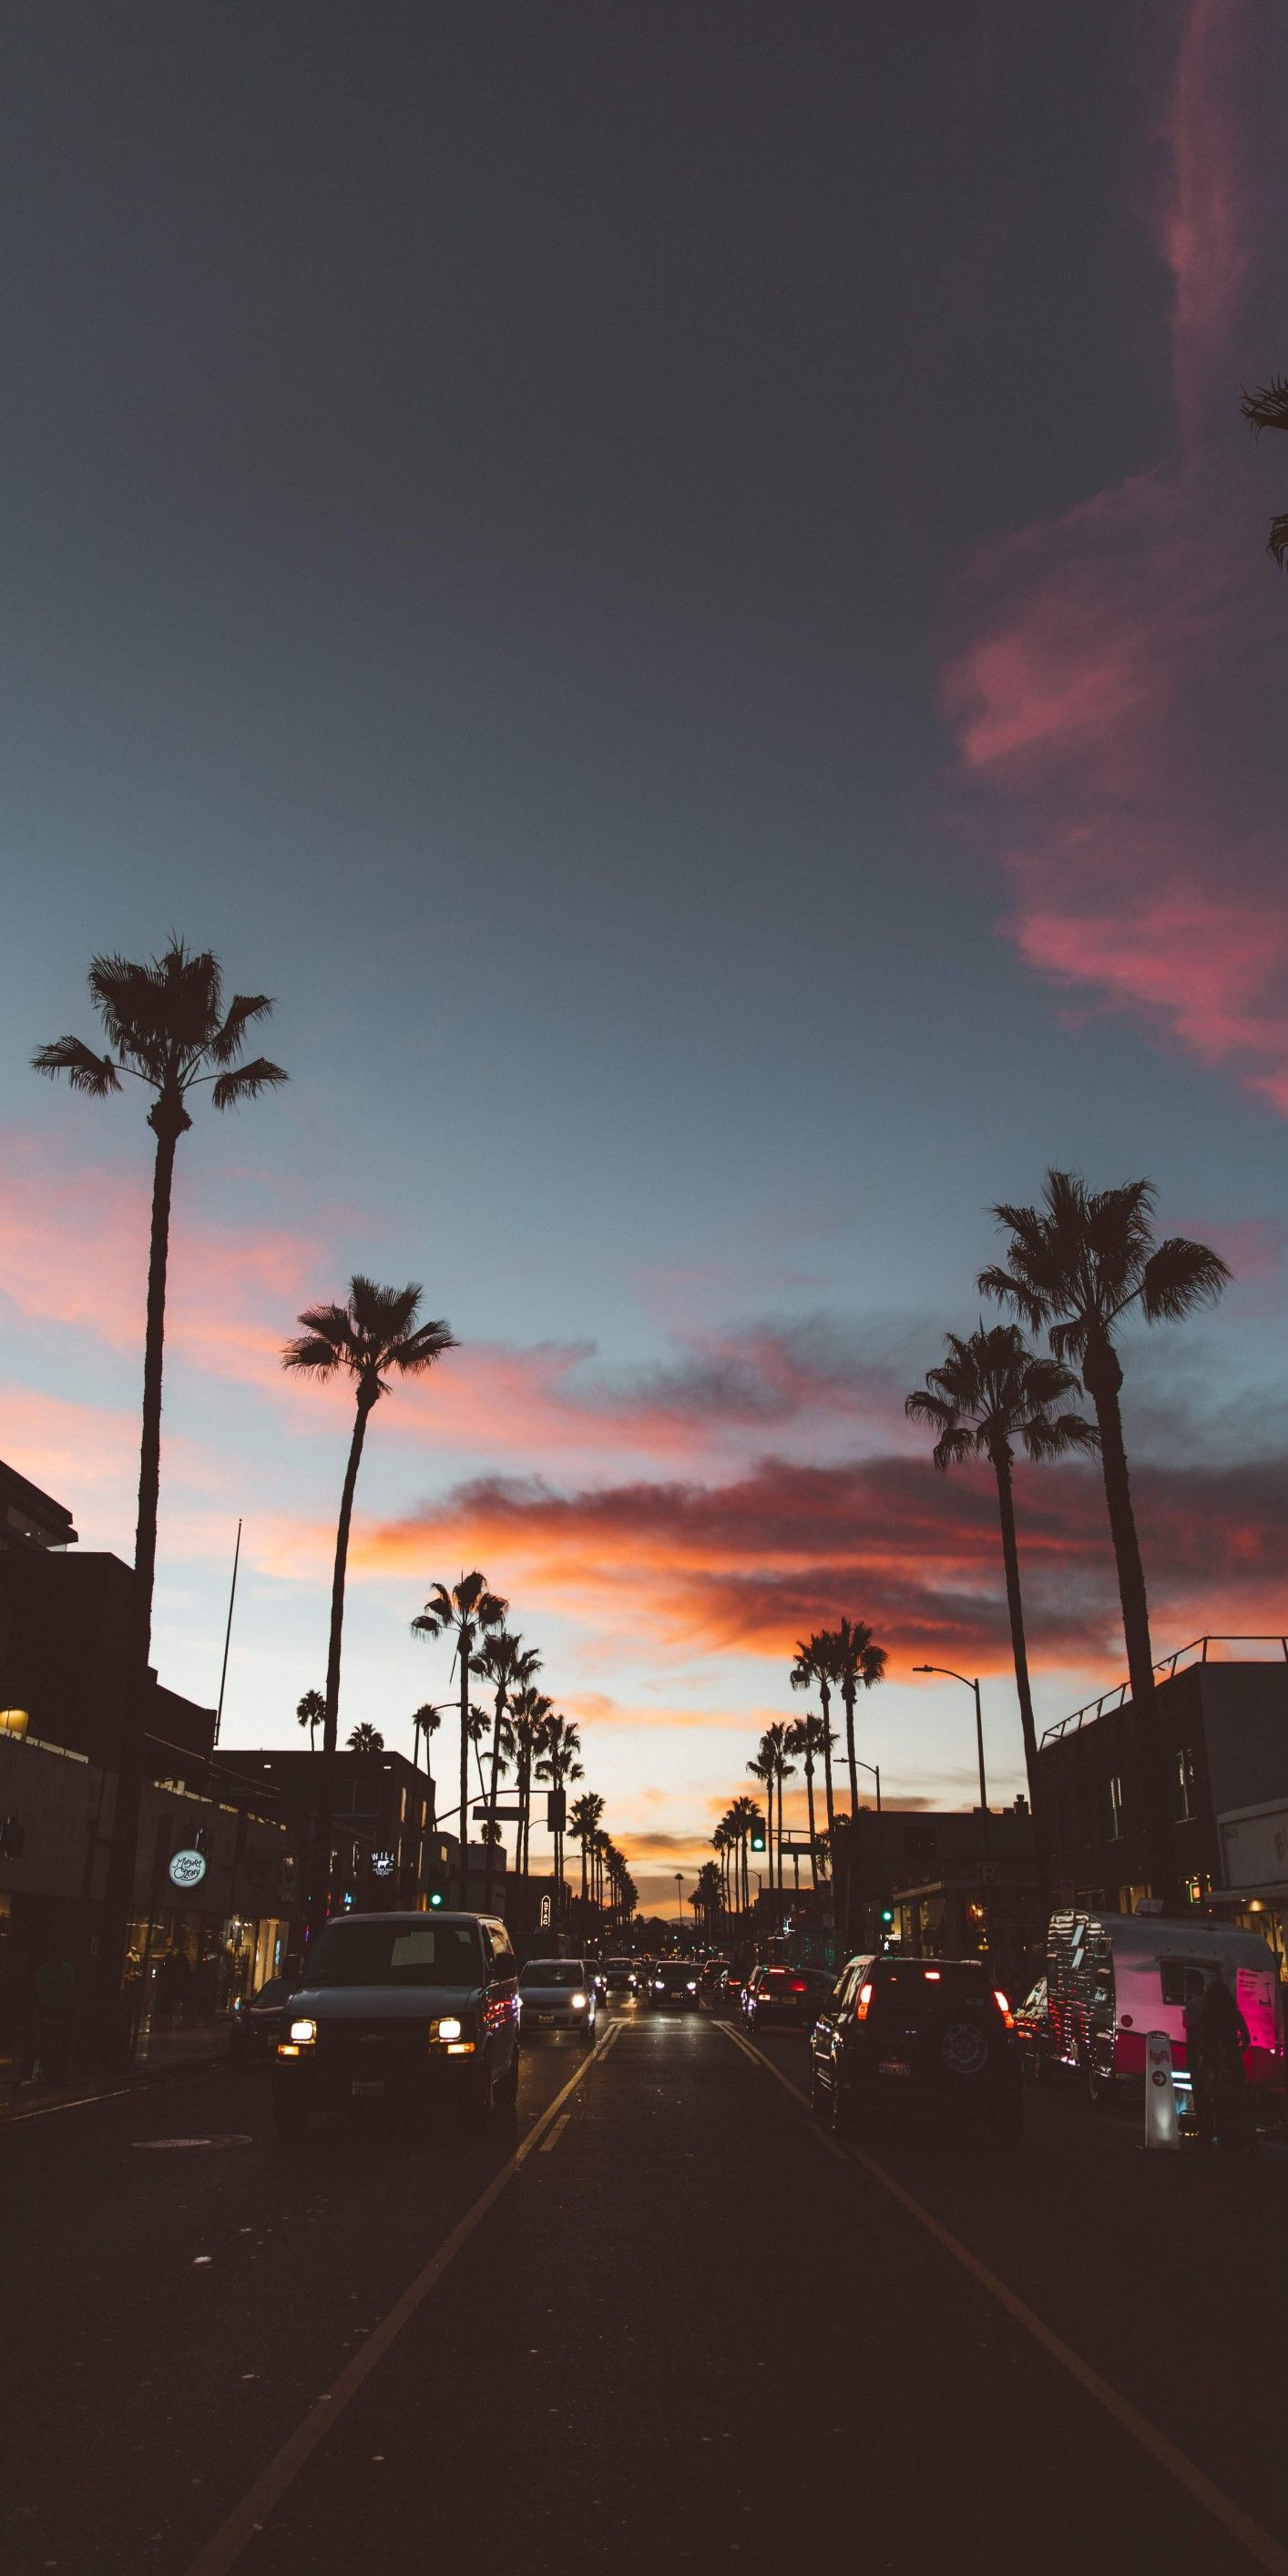 Make your device cooler and more. California Aesthetic Wallpapers - Top Free California ...